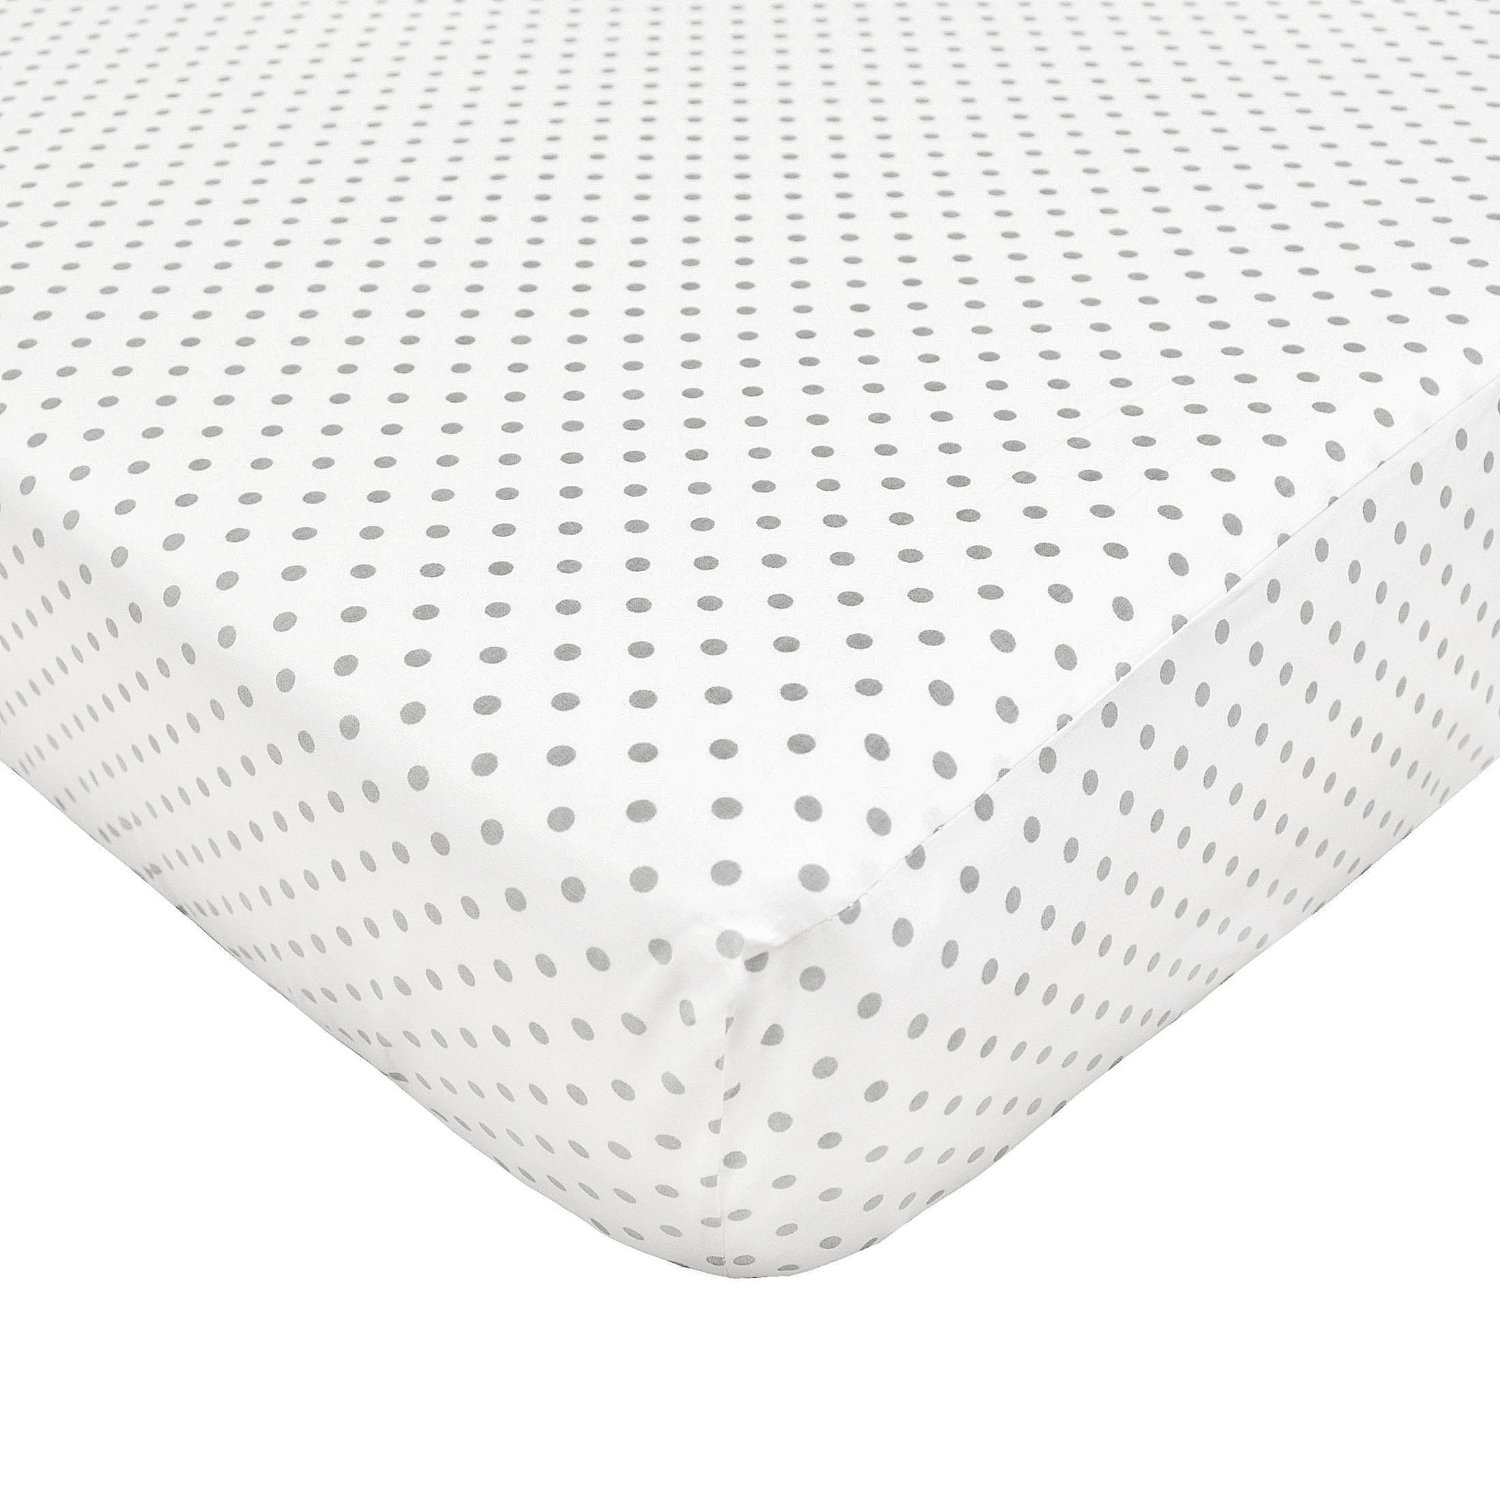 American Baby Company 100% Cotton Percale Crib Sheet - White Gray Dots